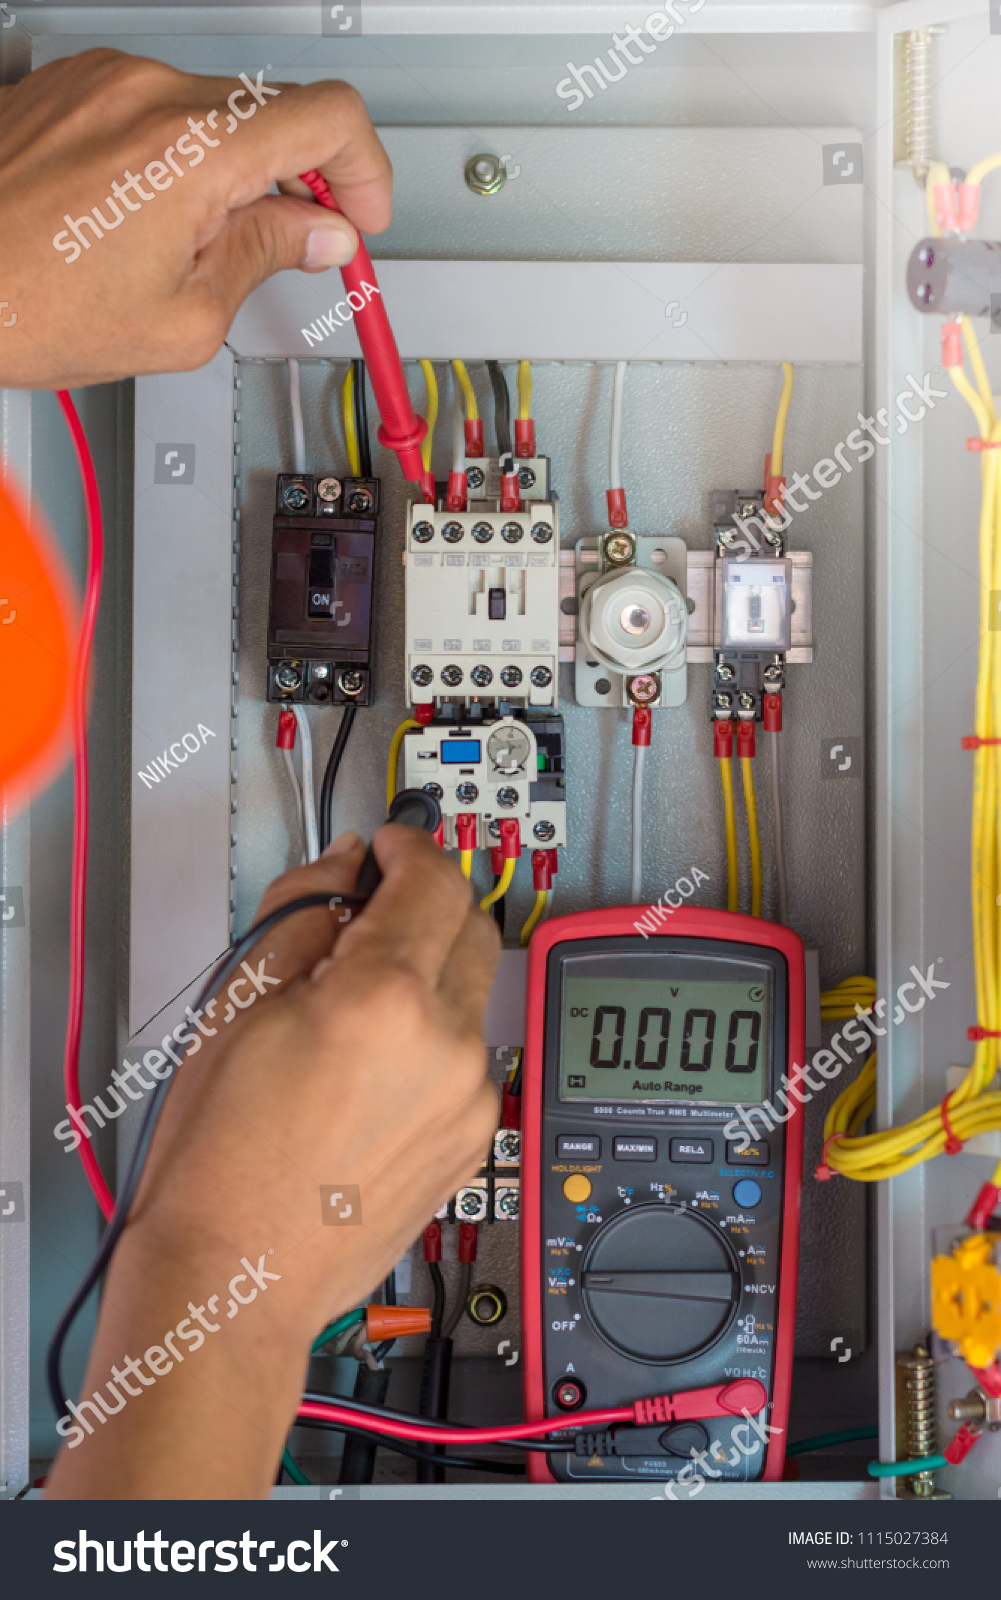 Electrician Checking Electrical Terminal Box Control Stock Photo Home Wiring Distribution Panel With Magnetic Contactor And Overload Relay Measuring